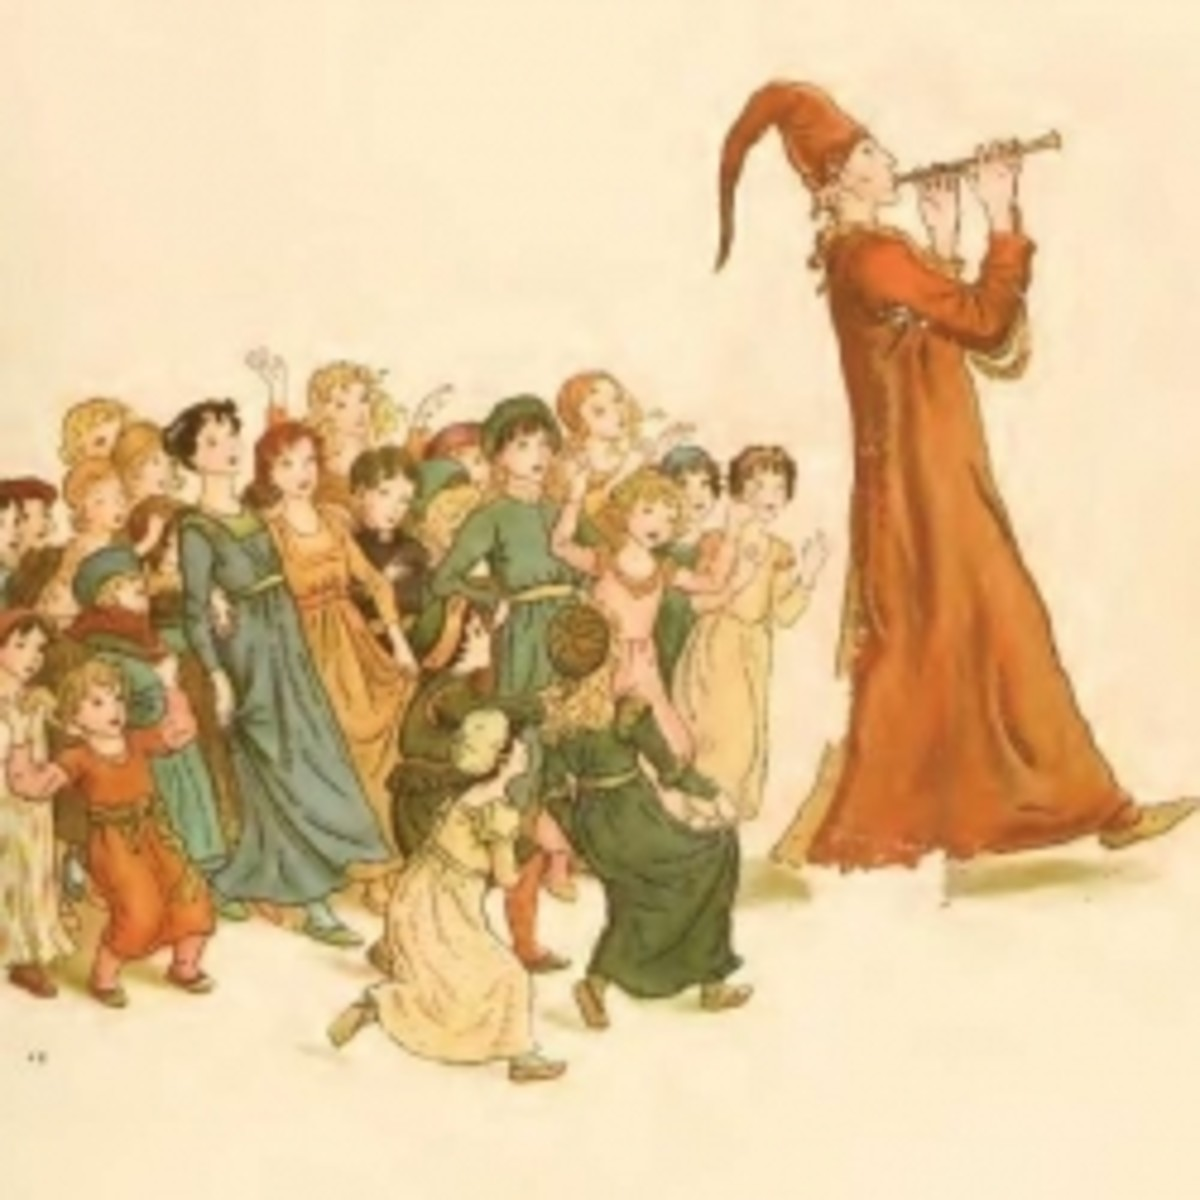 The Pied Piper of Hamelin: legend, story or poem for kids?